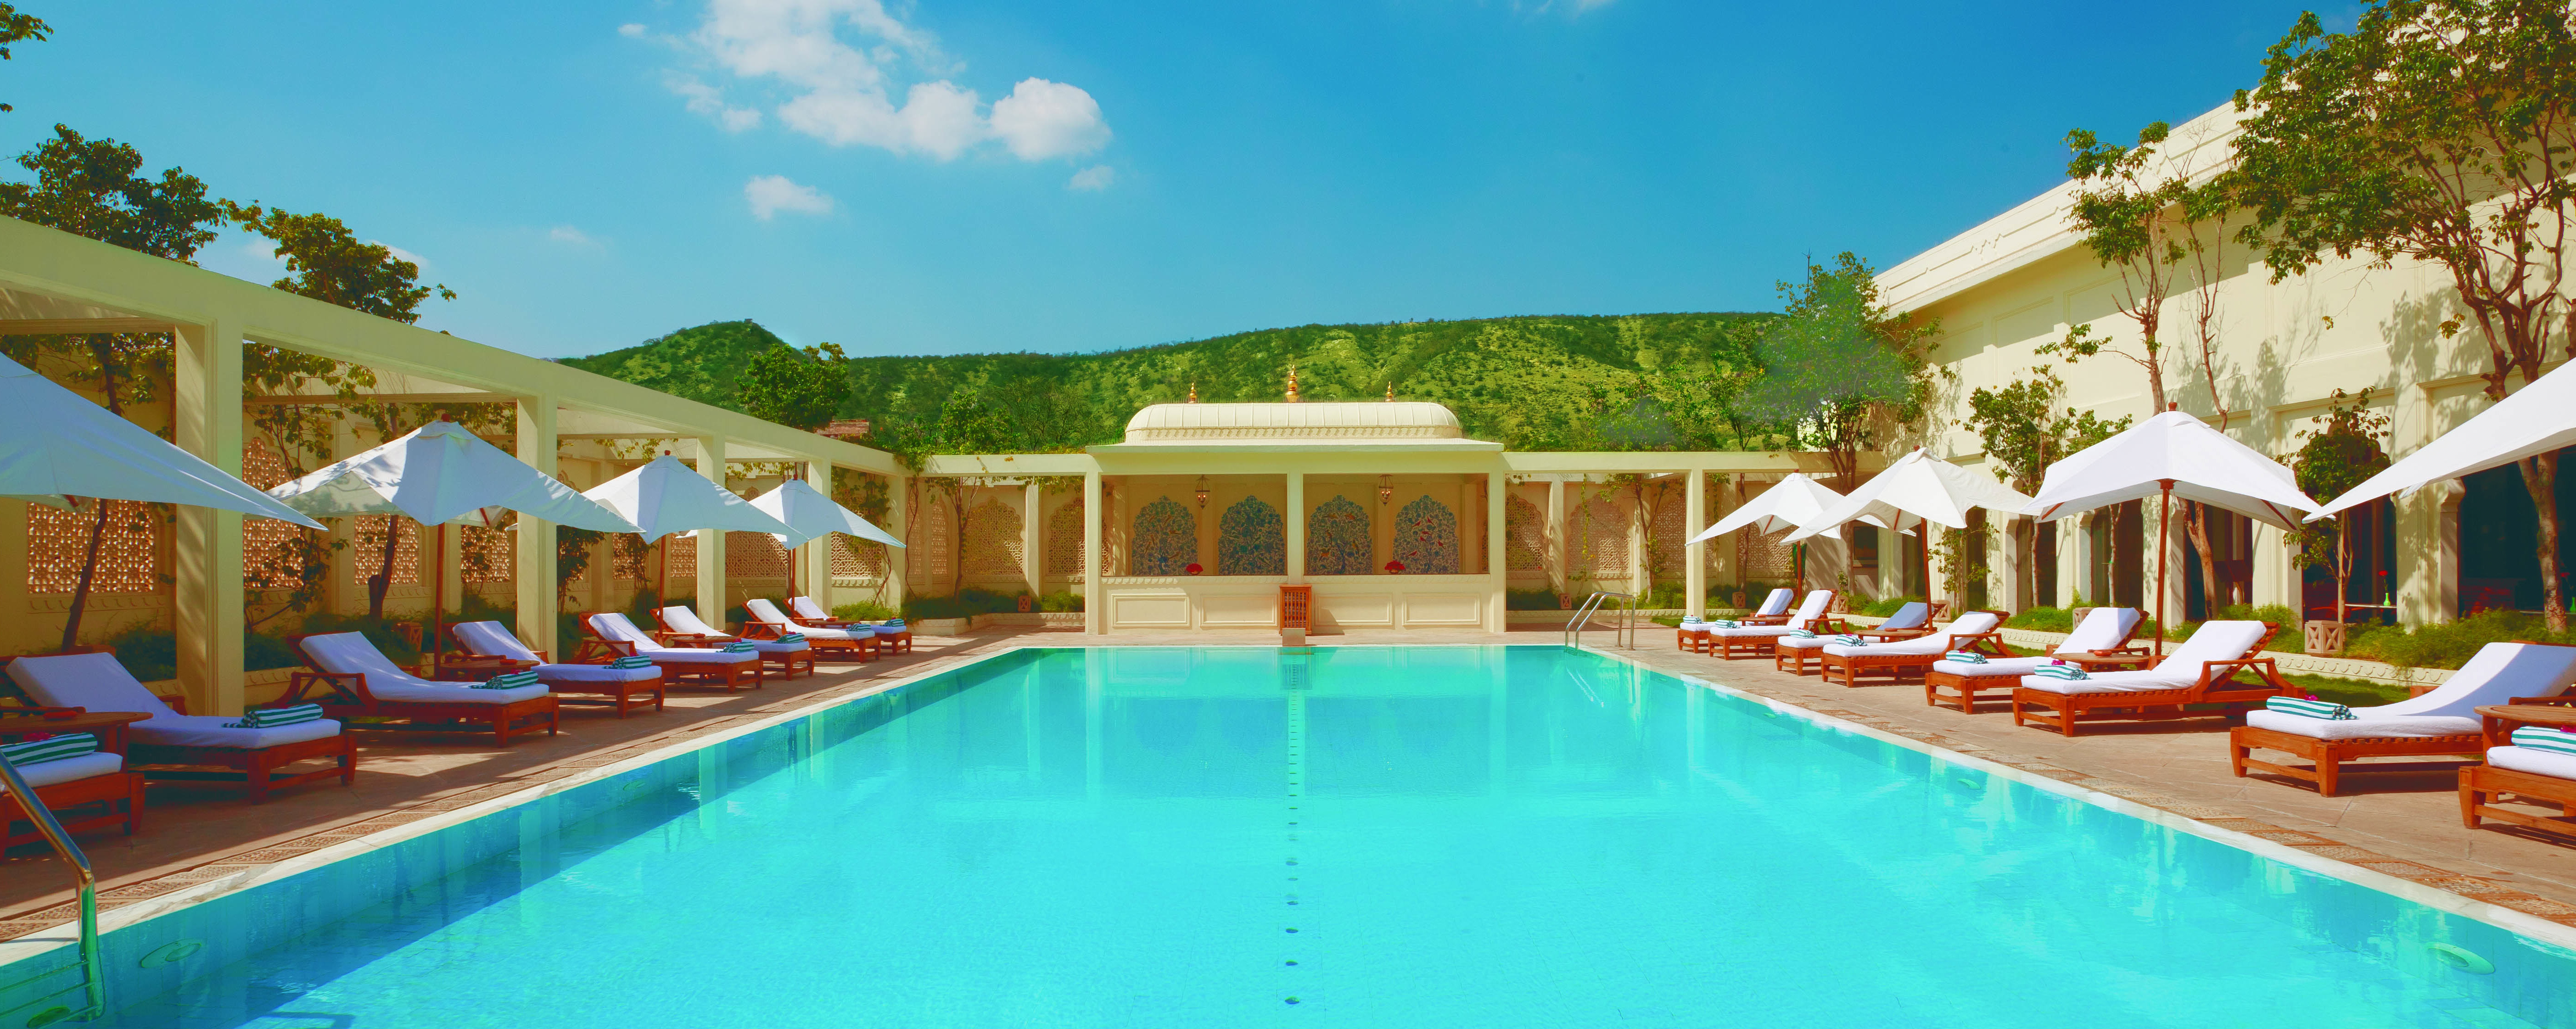 trident-jaipur-swimming-pool